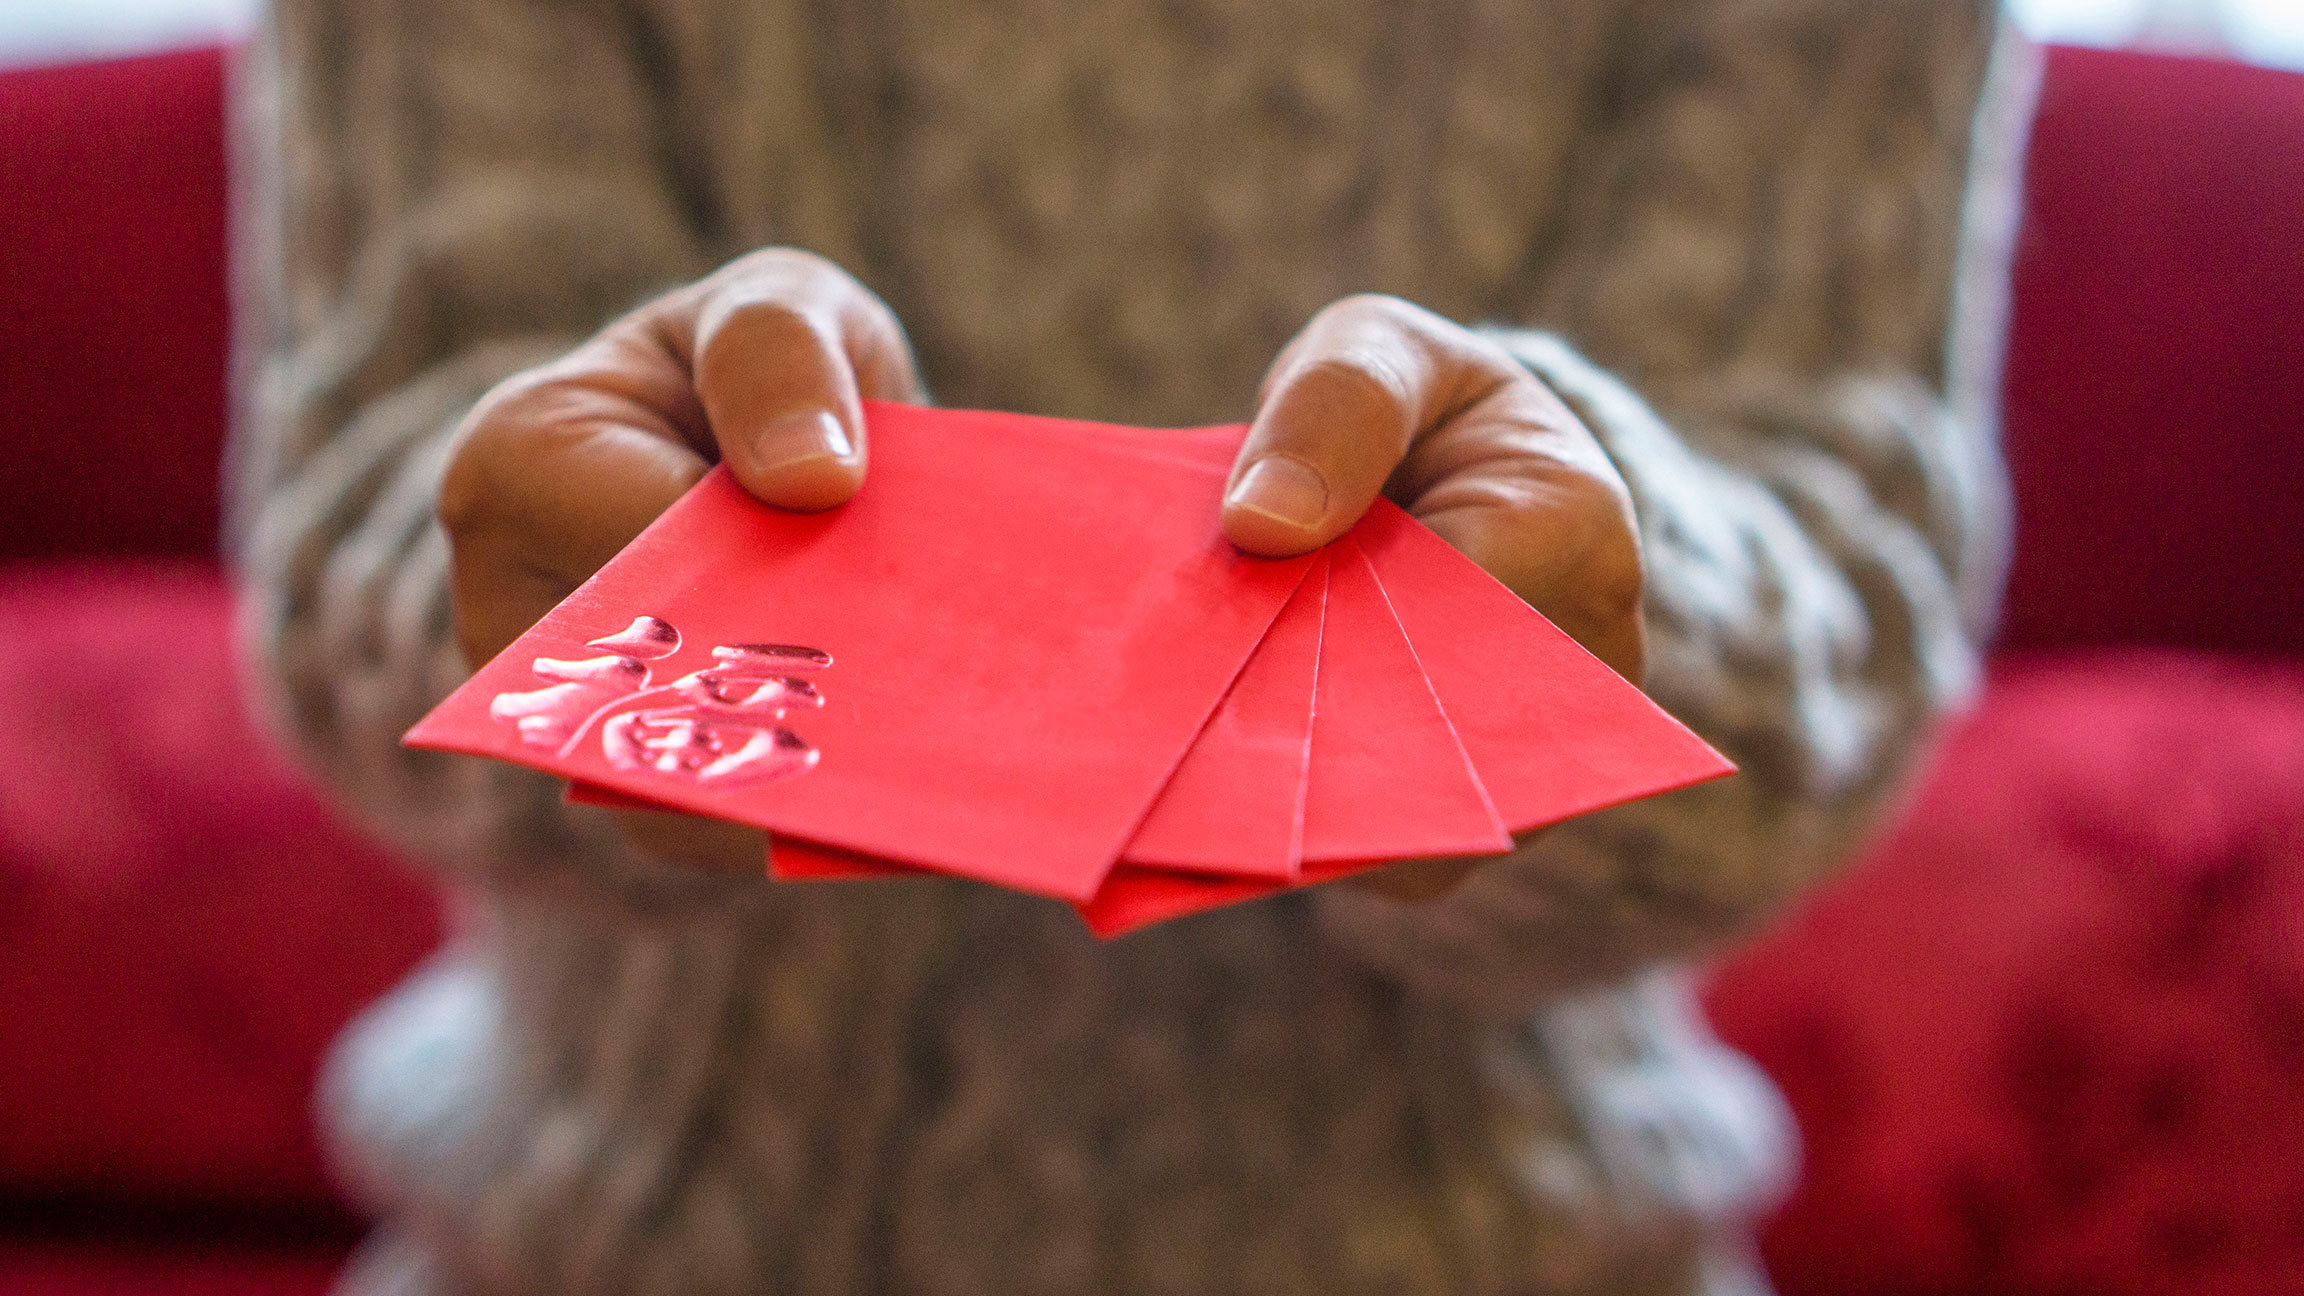 Handing red Chinese New Year envelopes